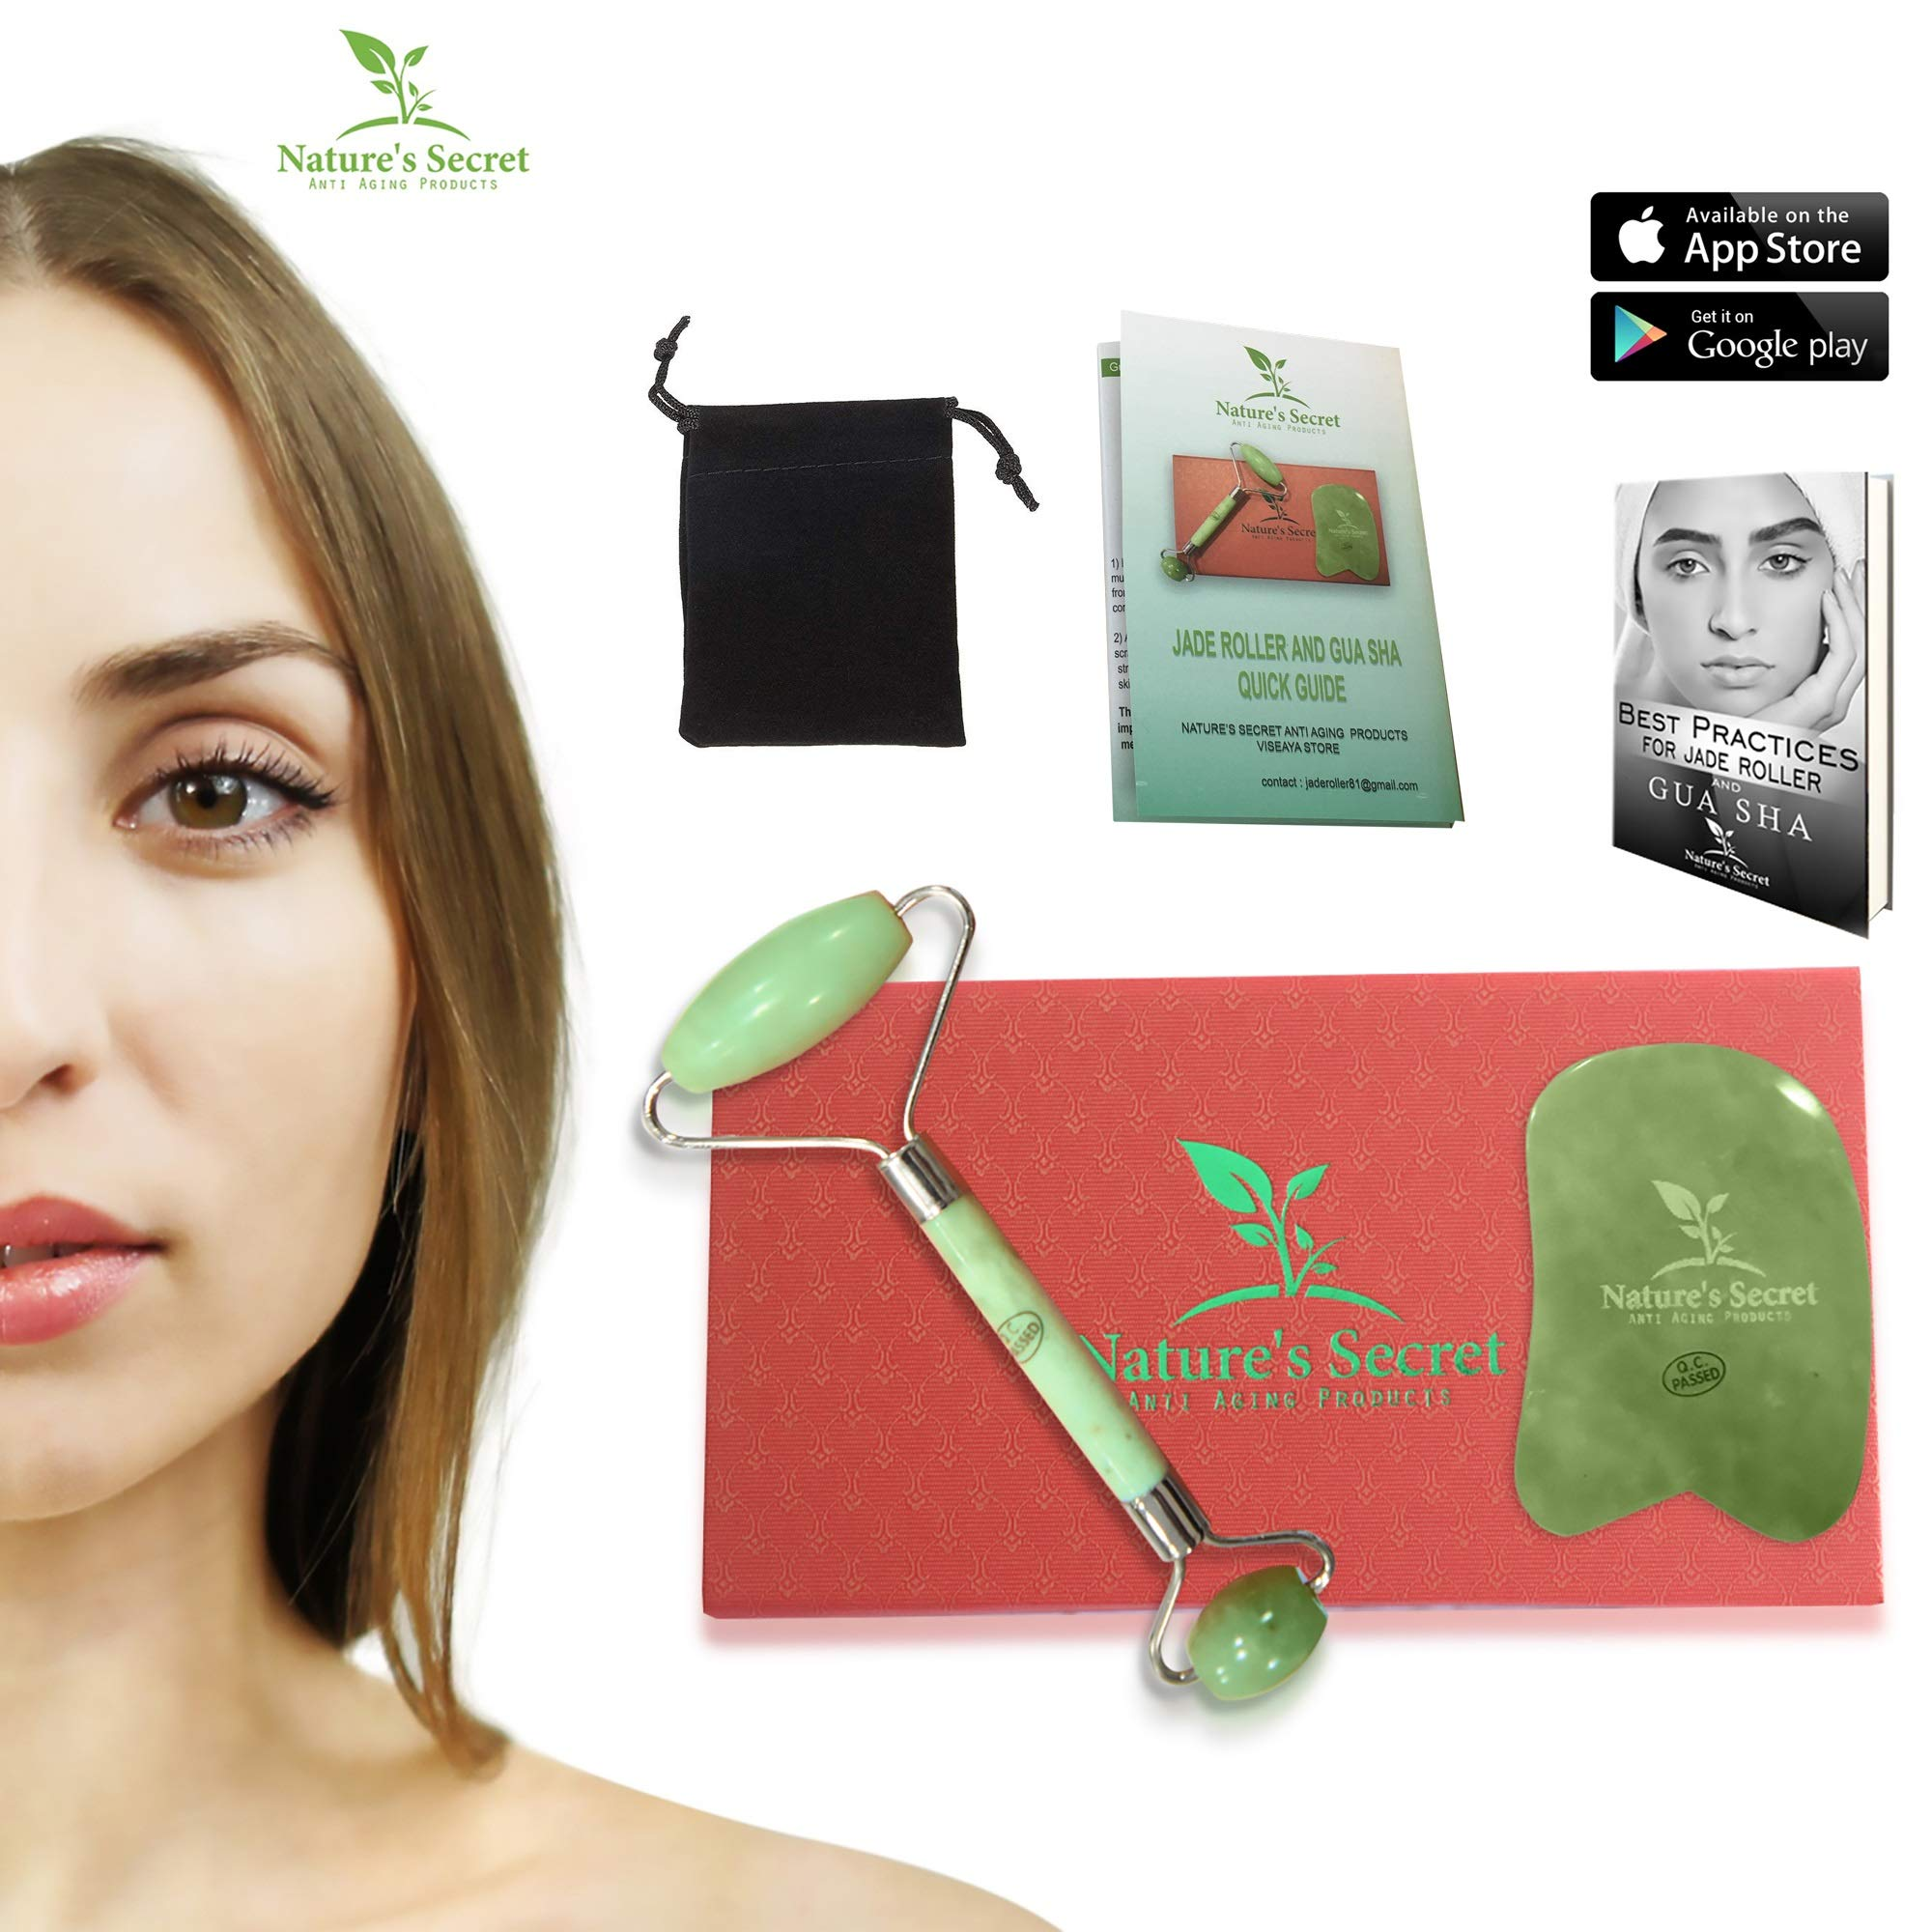 Anti Aging Jade Roller Therapy and Gua Sha Scraping Tool Set, 100% Natural Jade Facial Roller, Double Neck Healing Slimming Massager for Relaxing, Rejuvenates Skin and Treats Wrinkles, Ideal Gift Idea